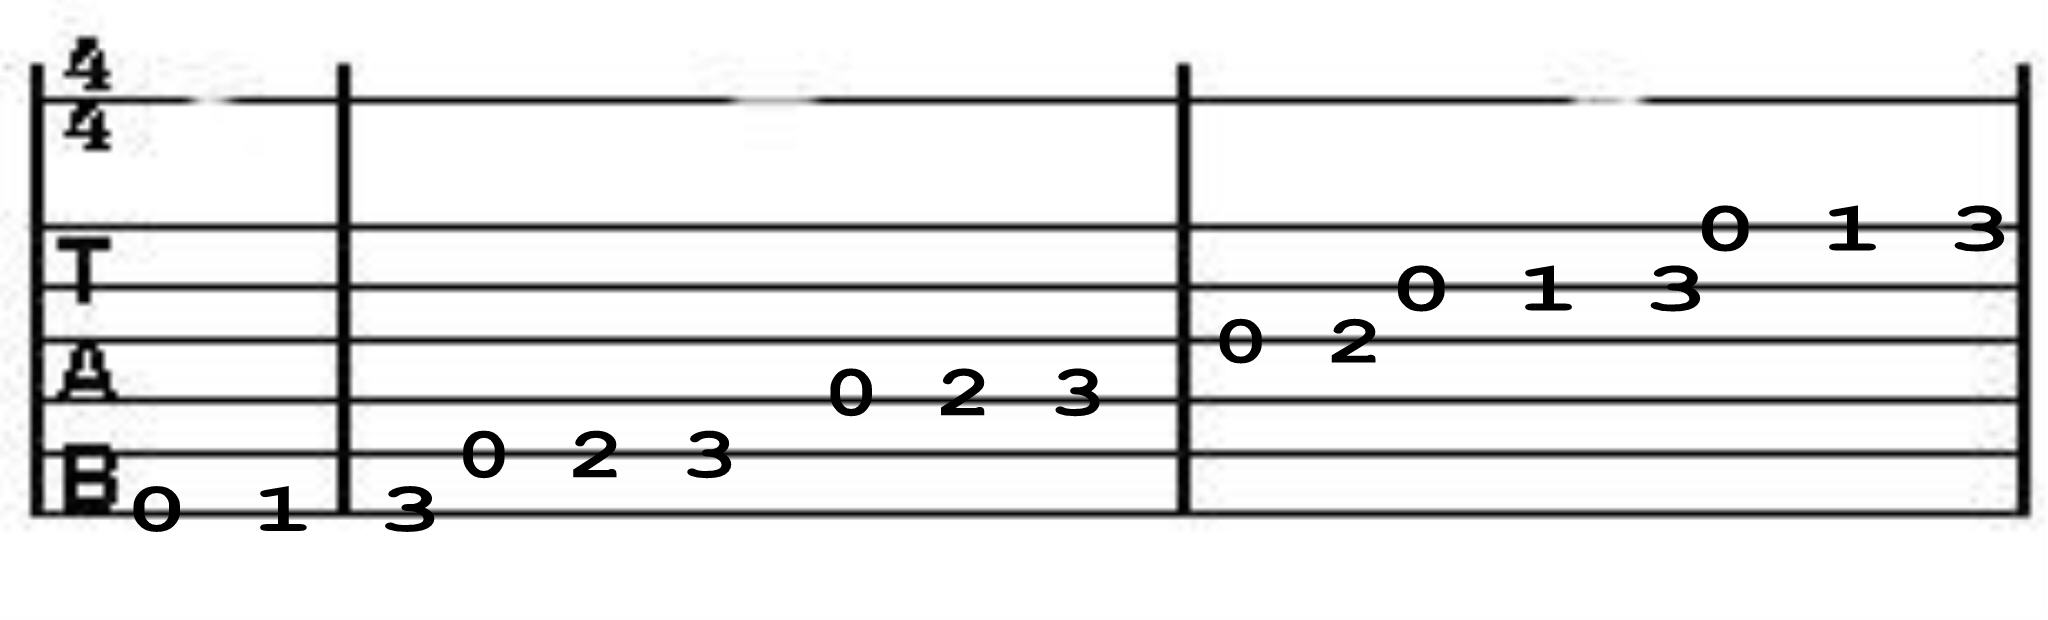 Worst Guitar Tab Ever Sick Chirpse